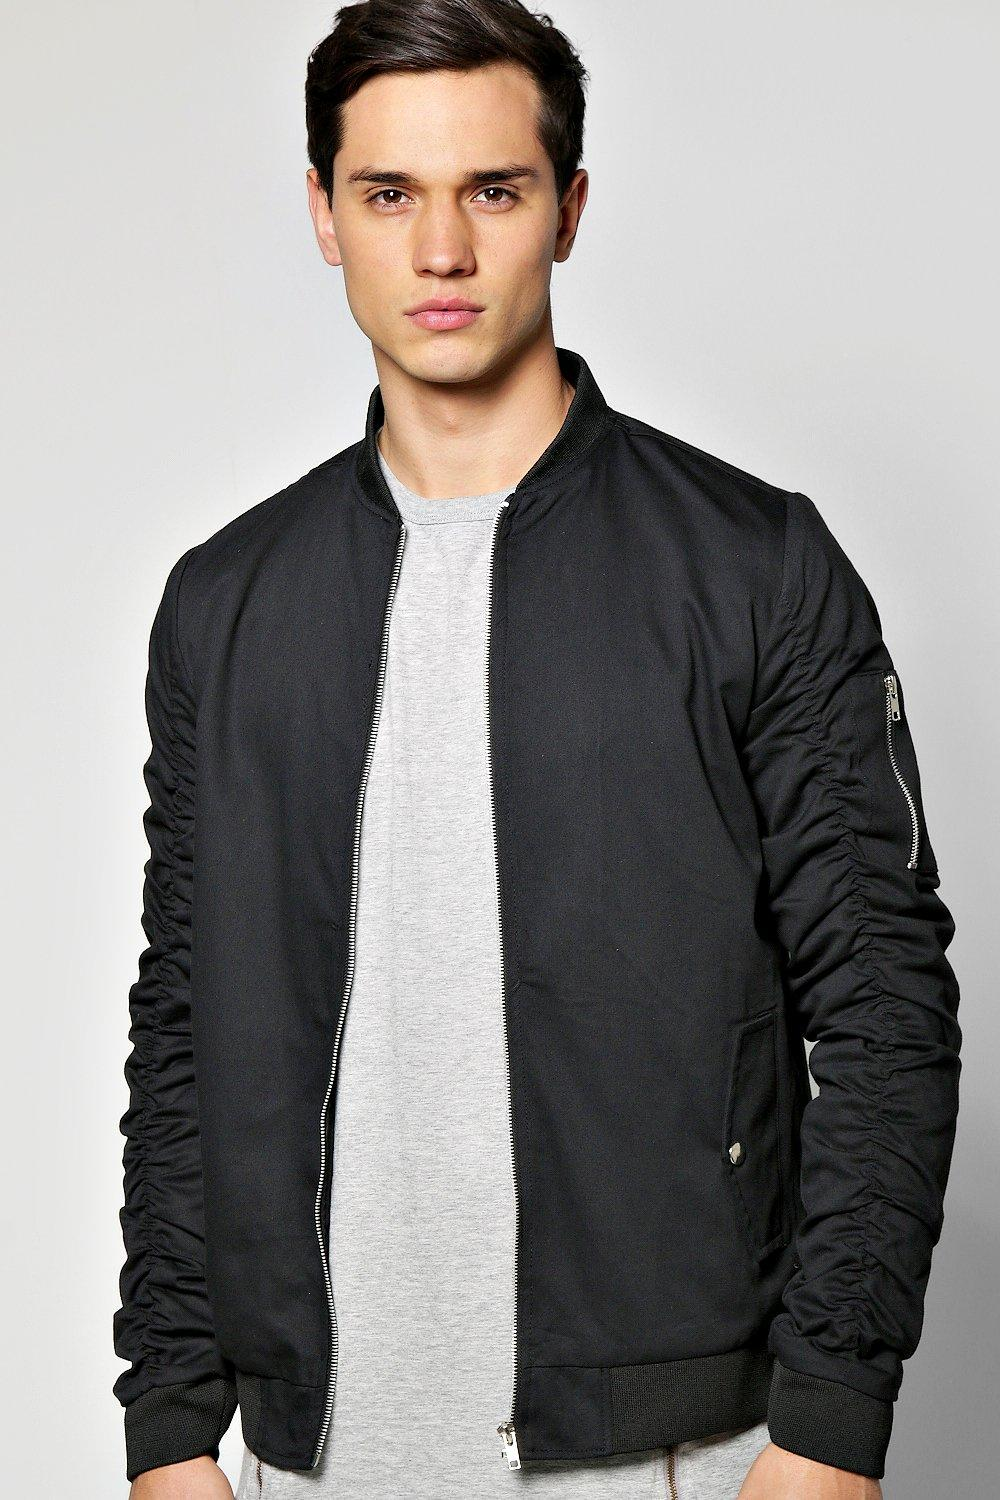 Bomber Jackets For Men Photo Album - Reikian